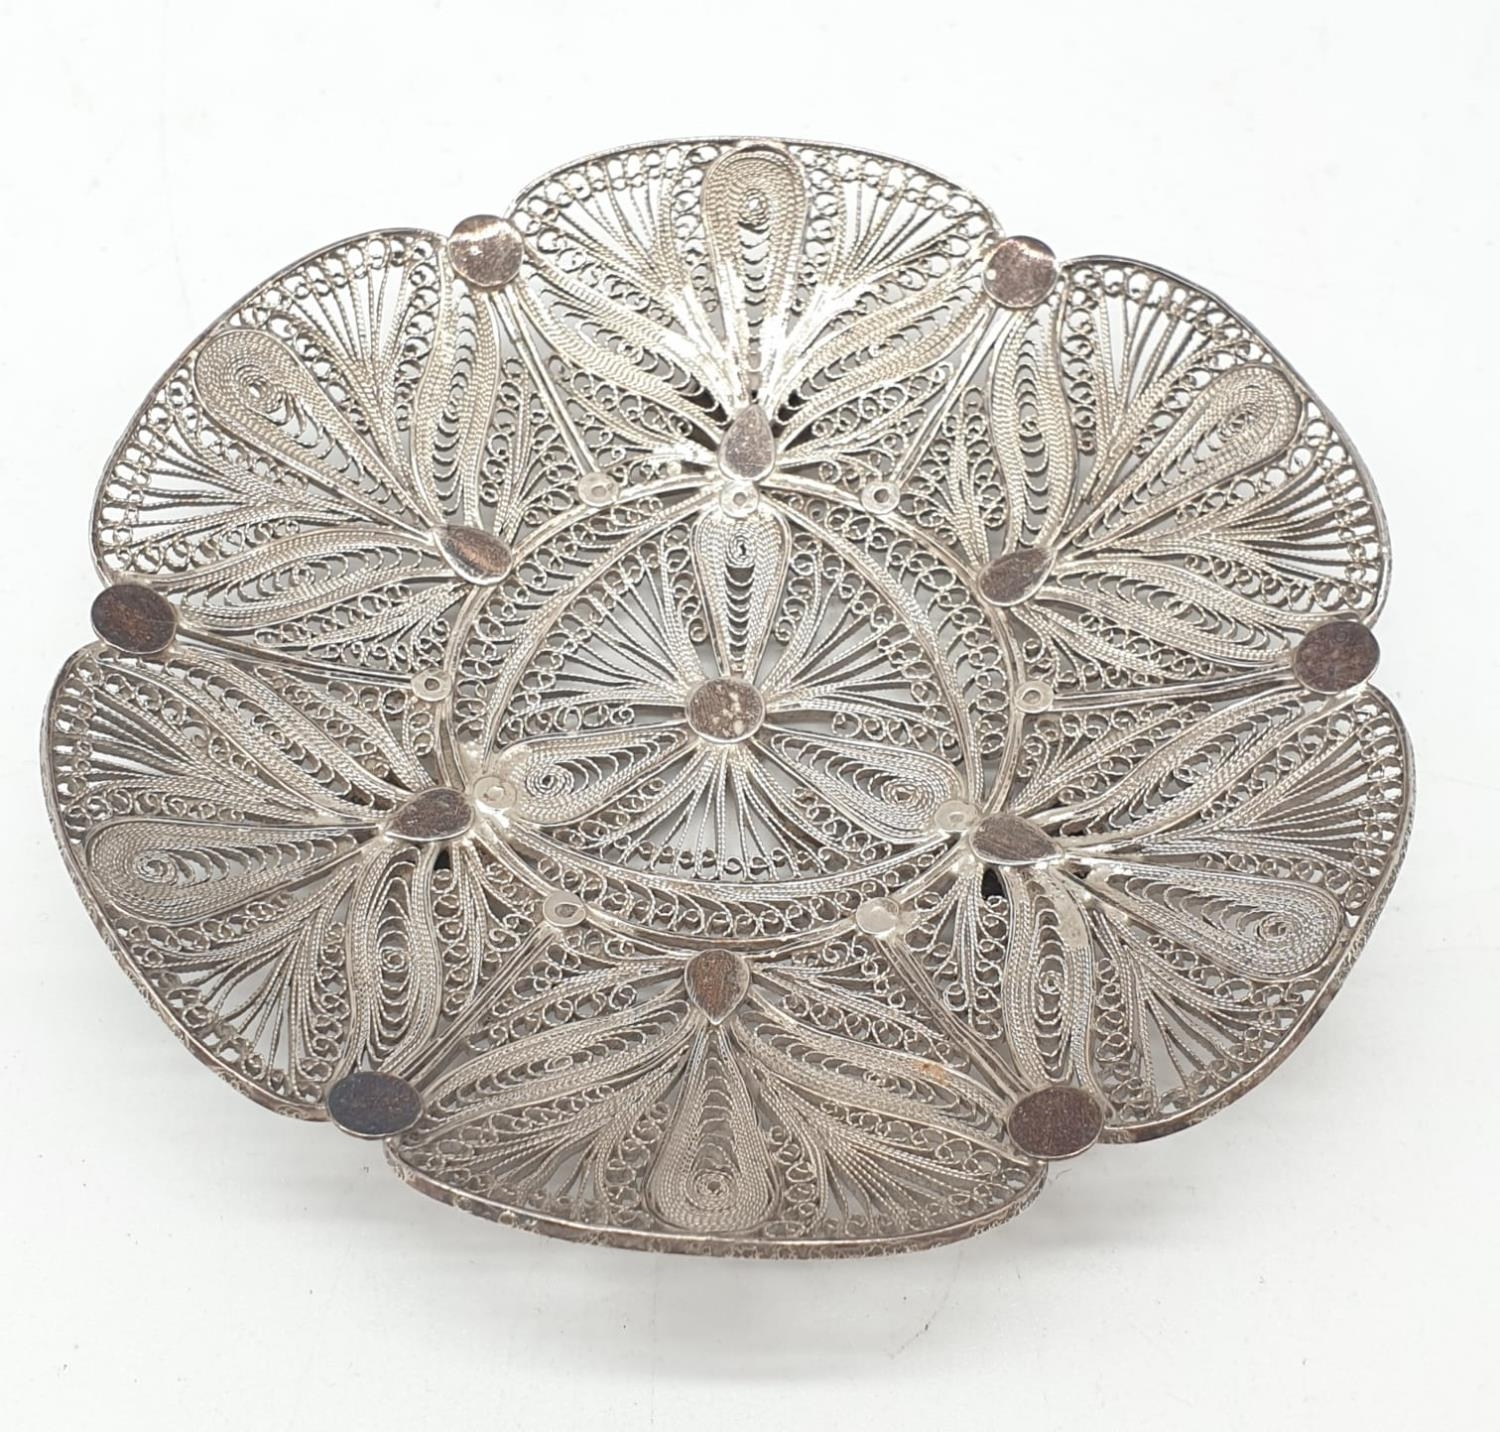 Silver filigree dish. 61.3g in weight. 10cm diameter. - Image 2 of 4